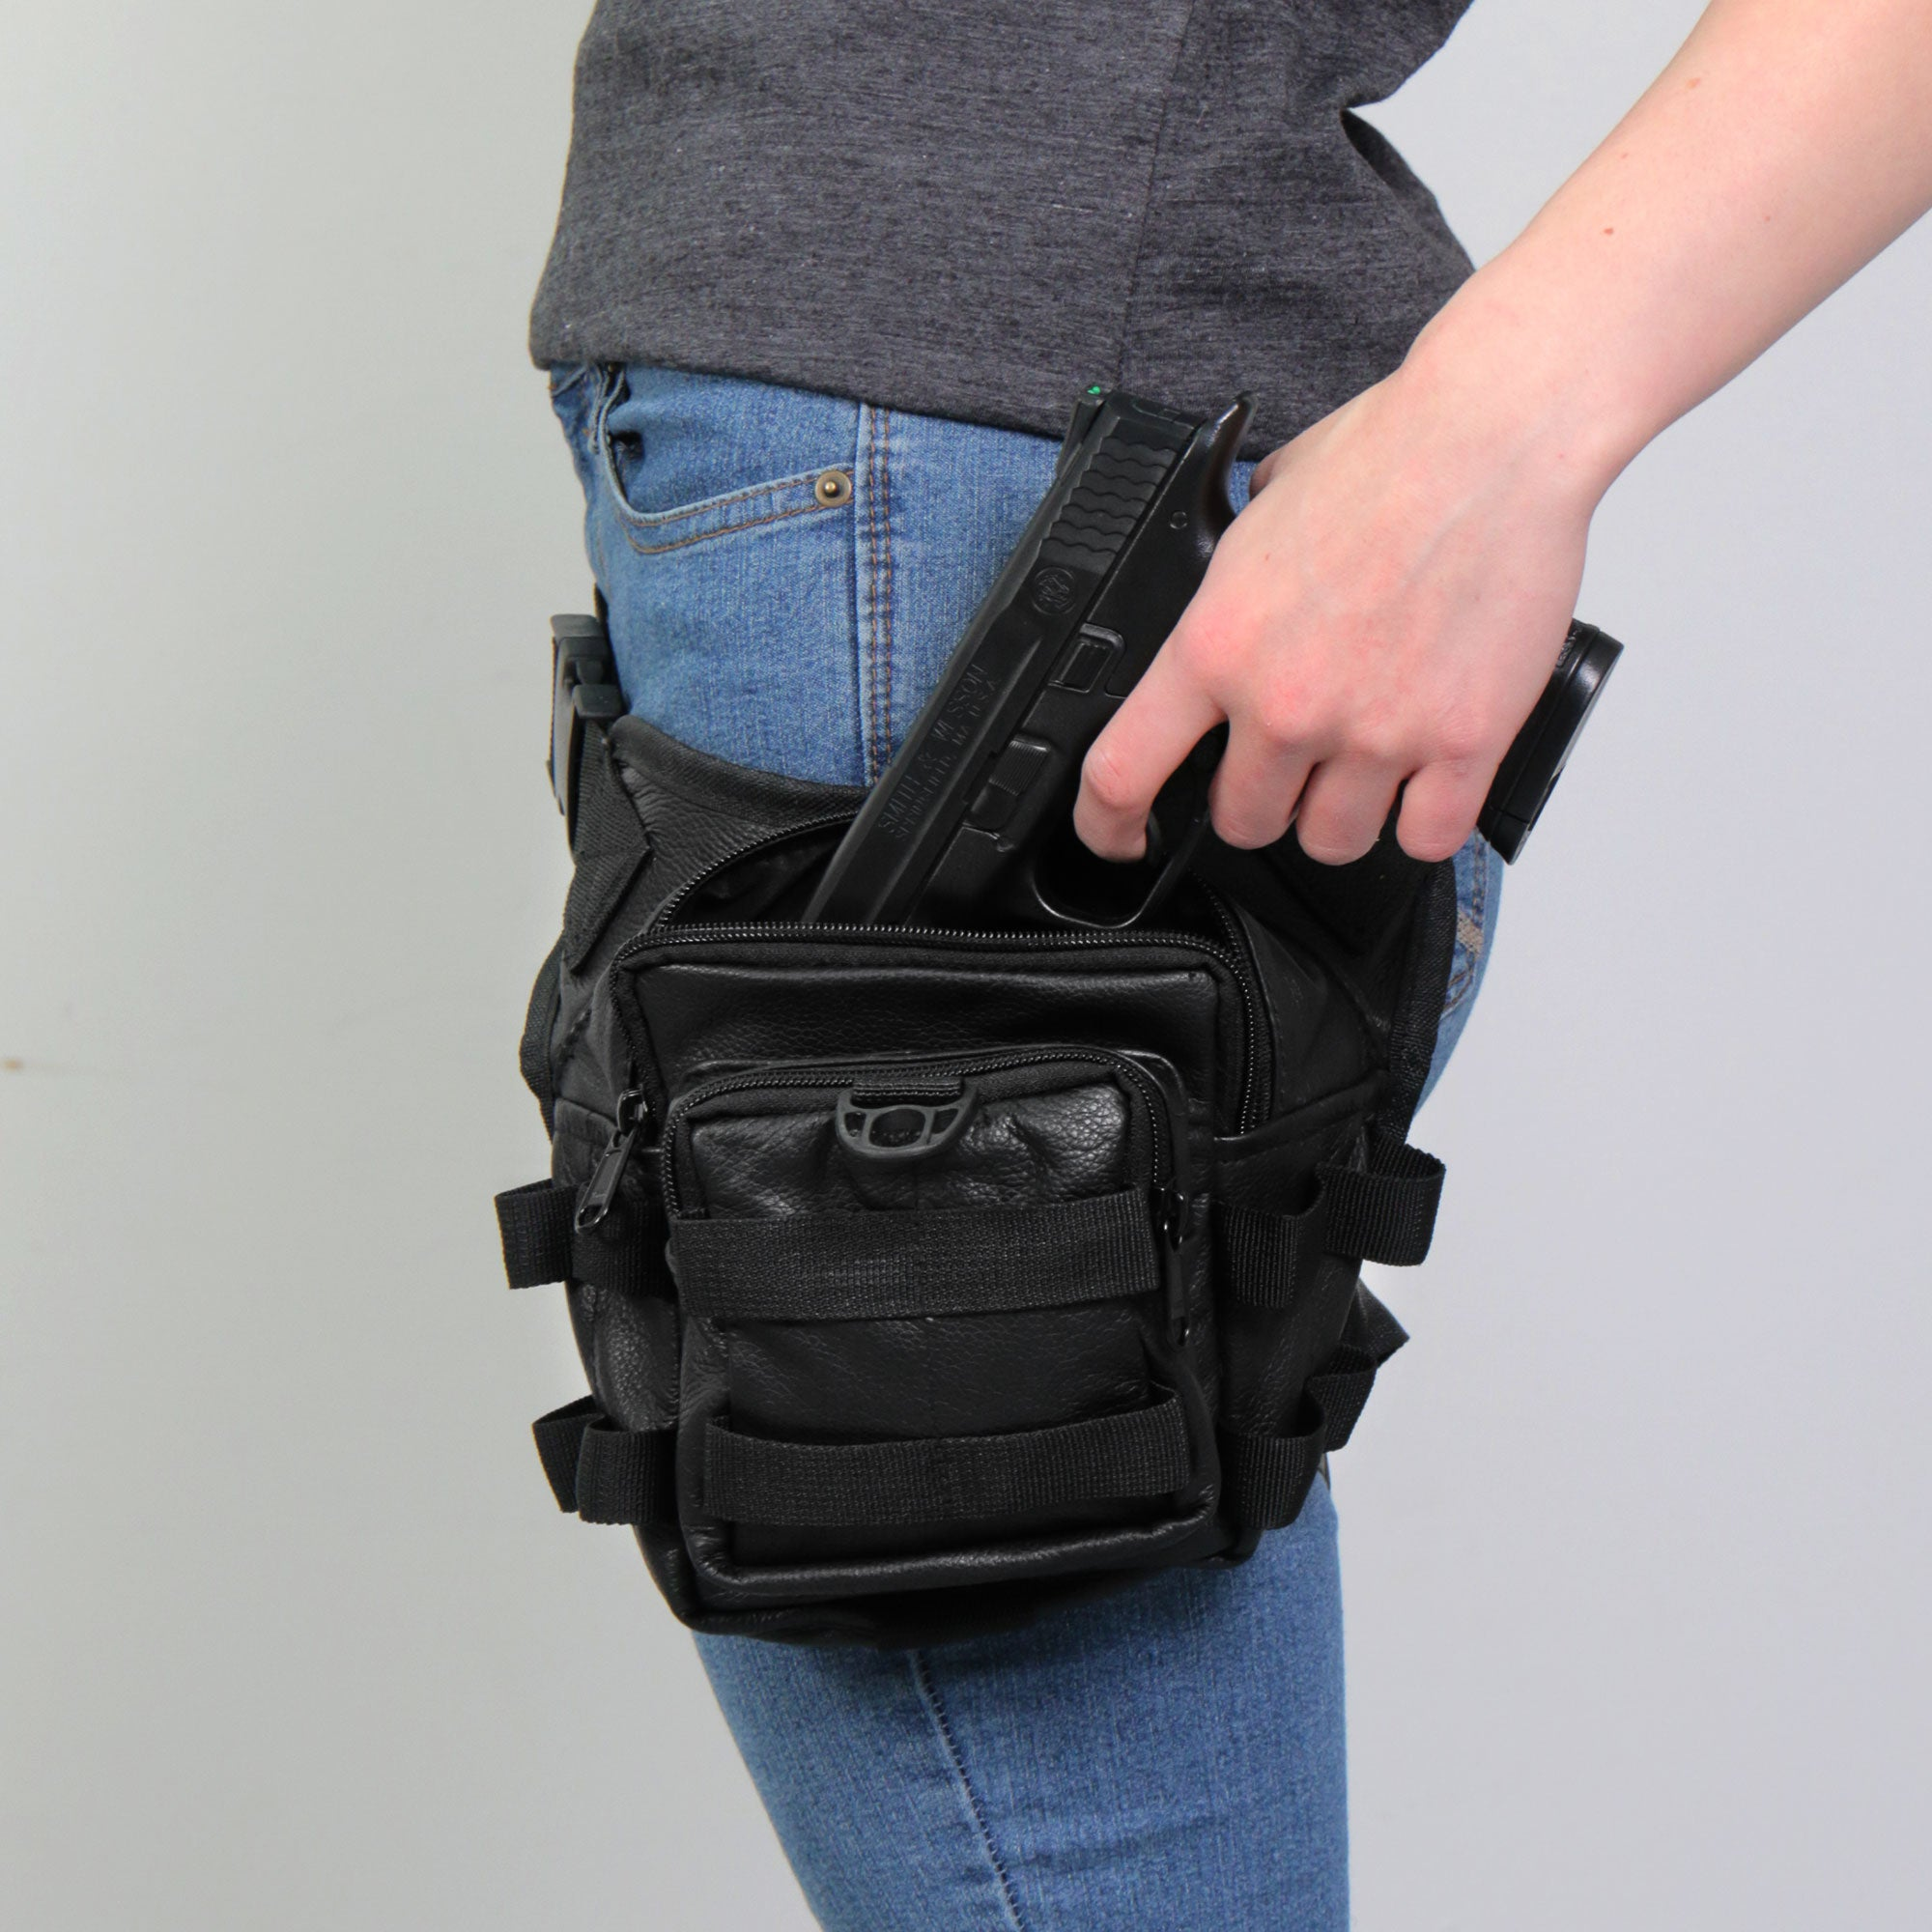 Hot Leathers Concealed Carry Thigh Bag